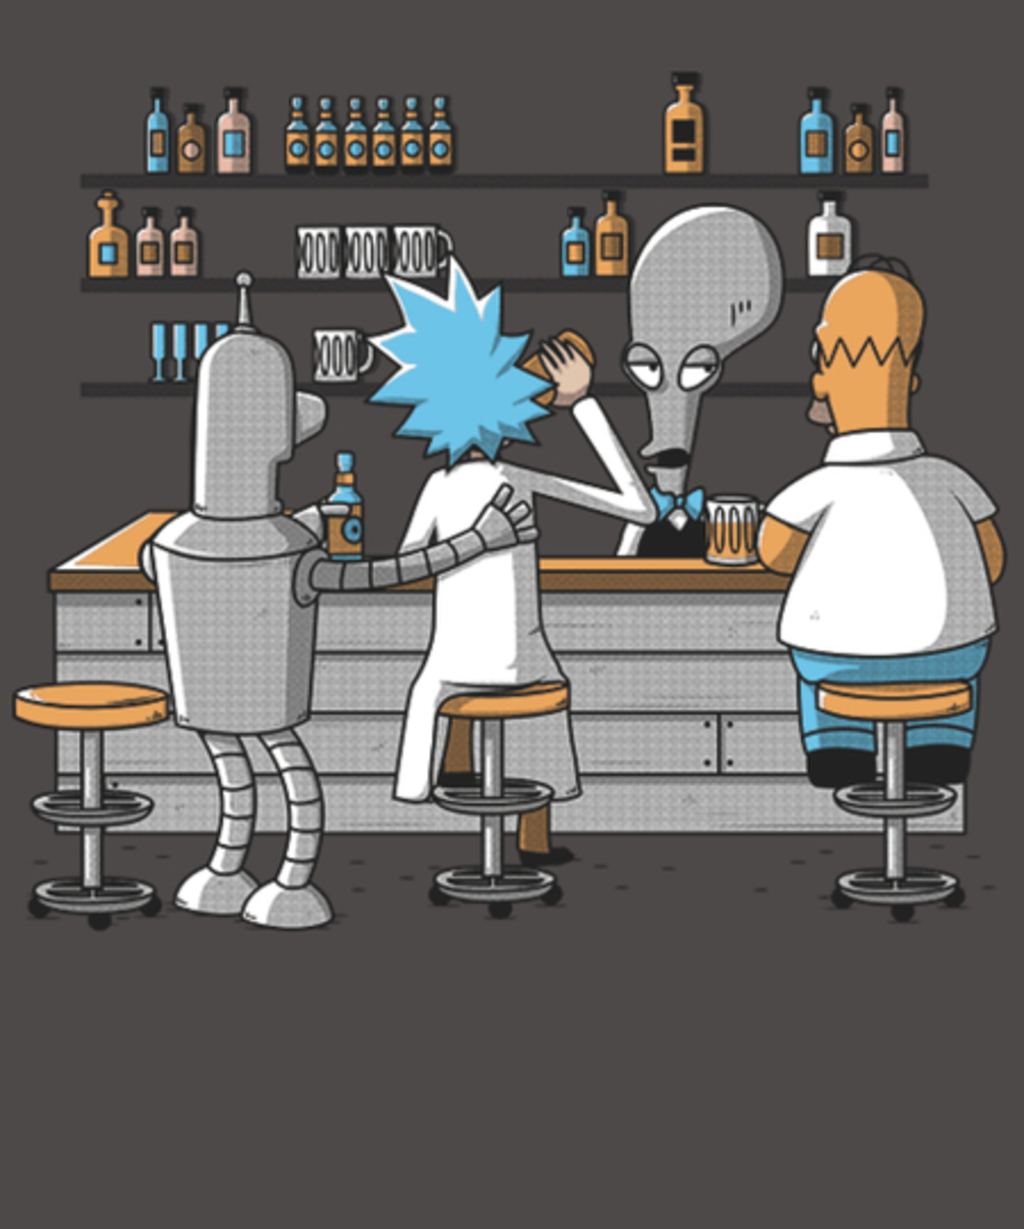 Qwertee: Roger's place